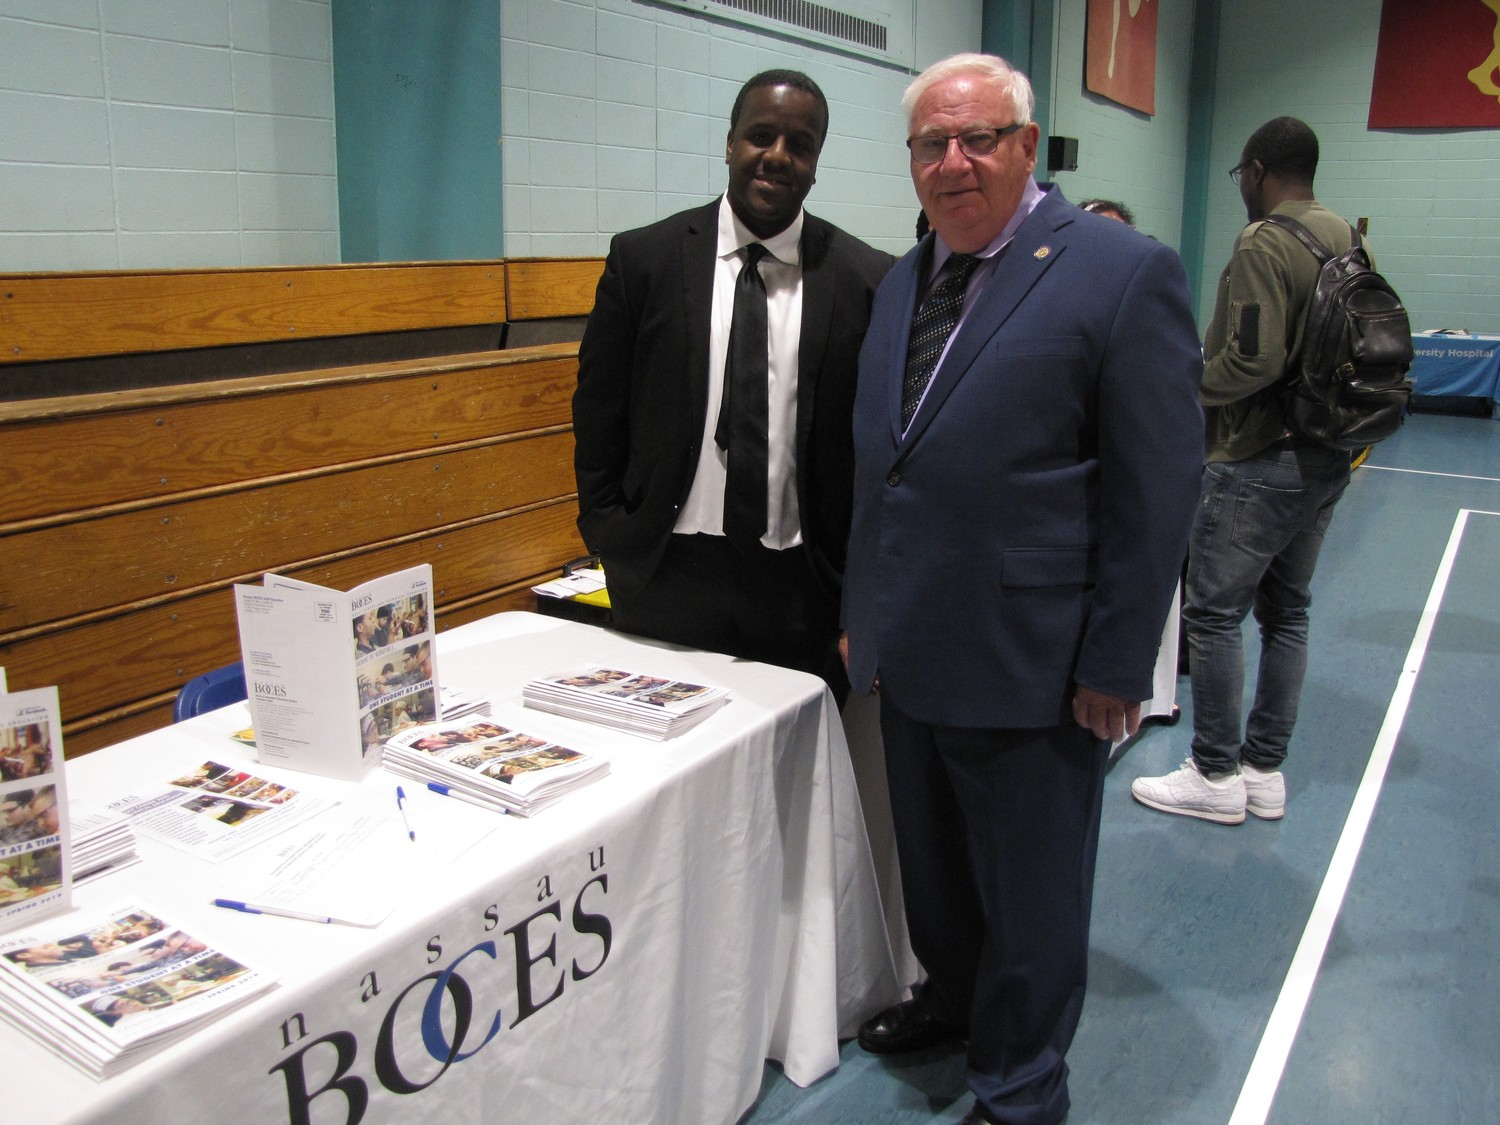 Assistant principal at BOCES, Jamel Johnson, right,  and  Senator John Brooks were all smiles during the job fair.